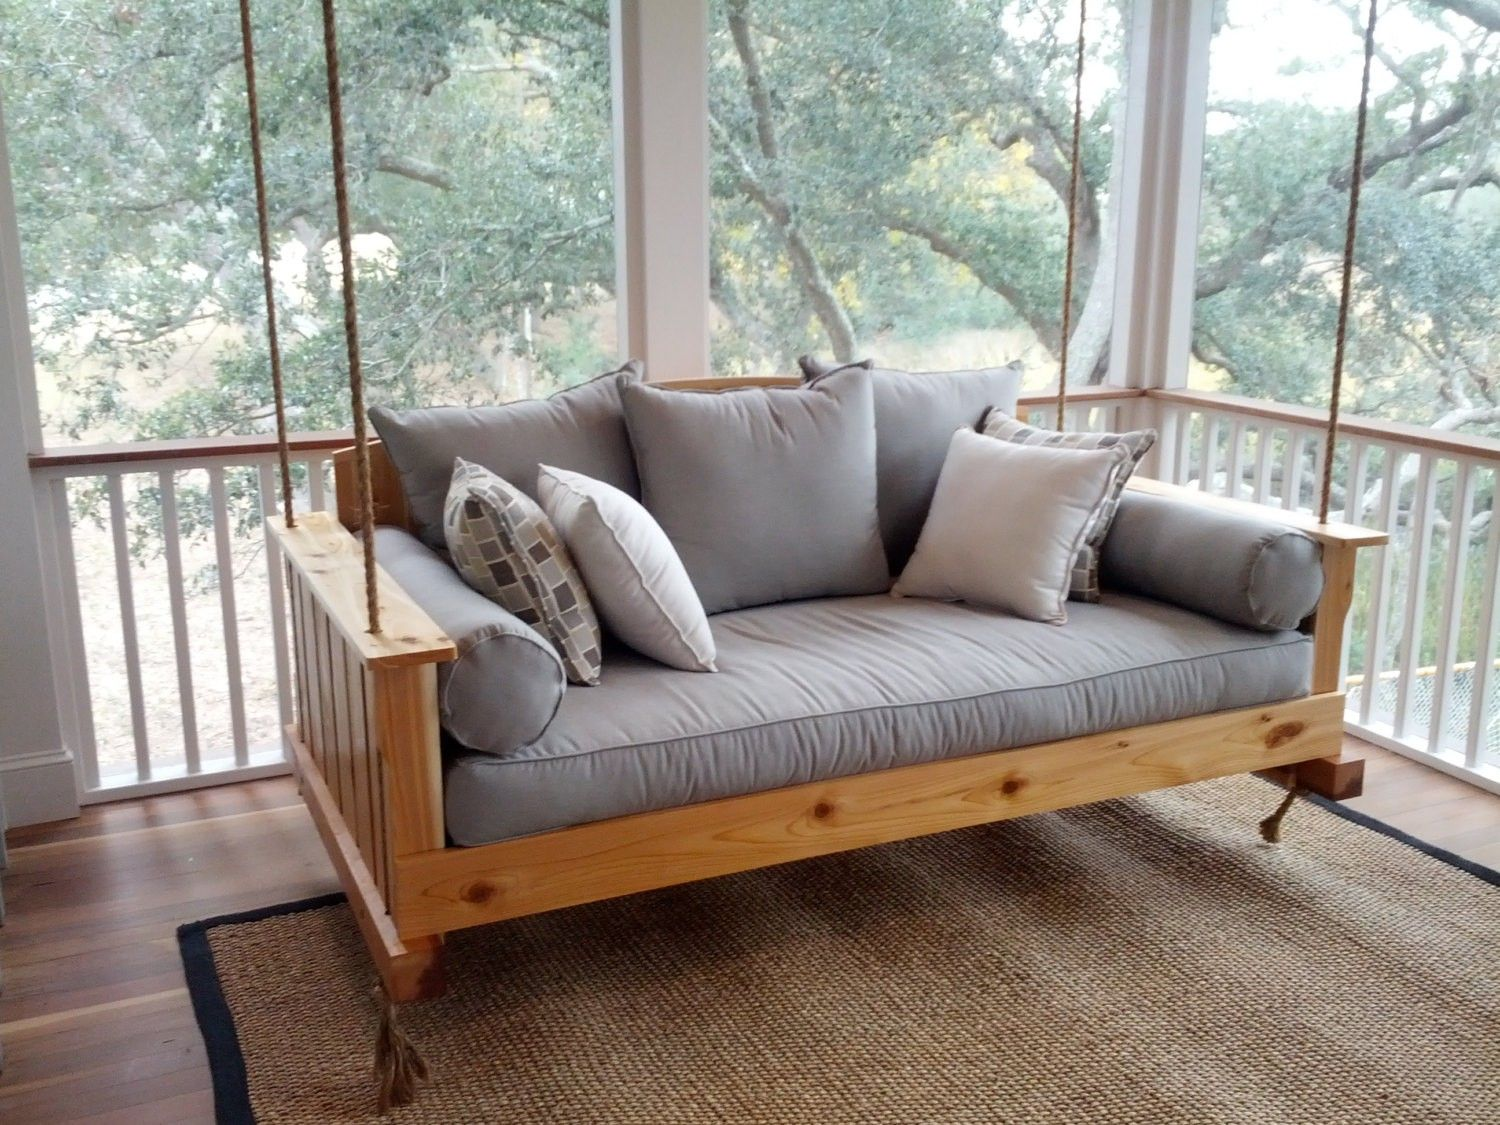 Day Bed Swing Porch Swing Bed Outdoor Porch Bed Hanging Porch Swing